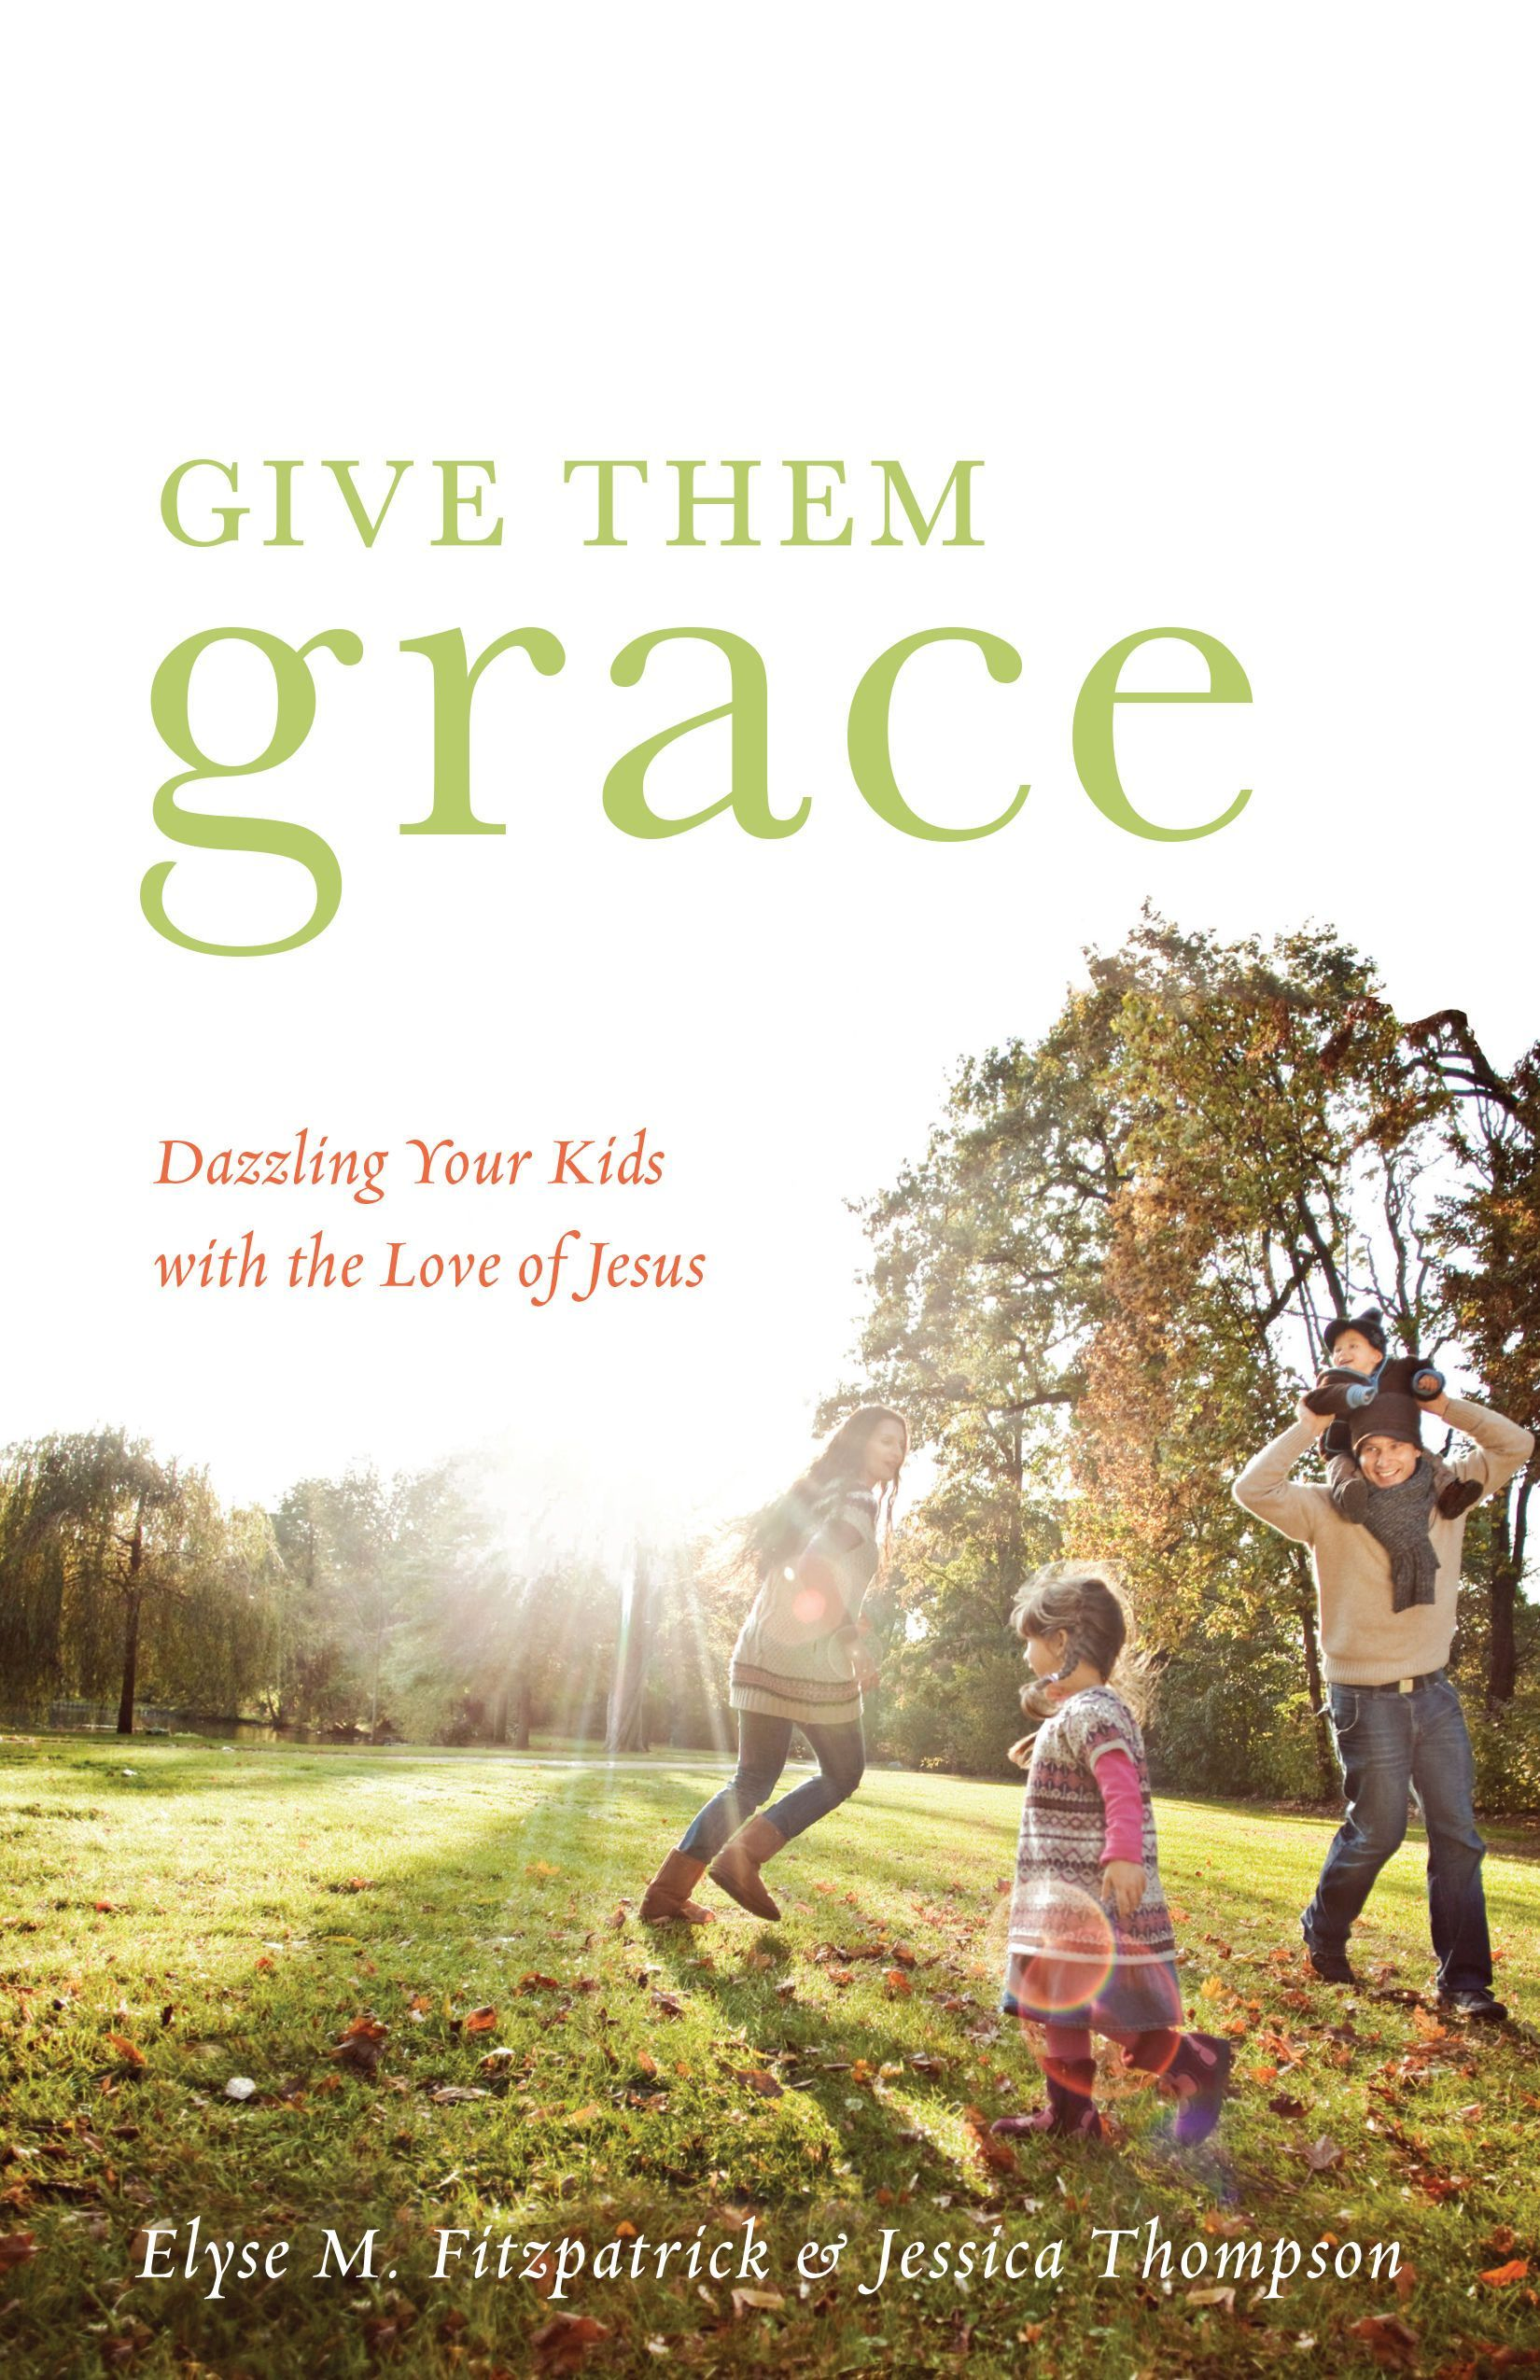 Give Them Grace by Elyse M. Fitzpatrick, ISBN: 9781433520099